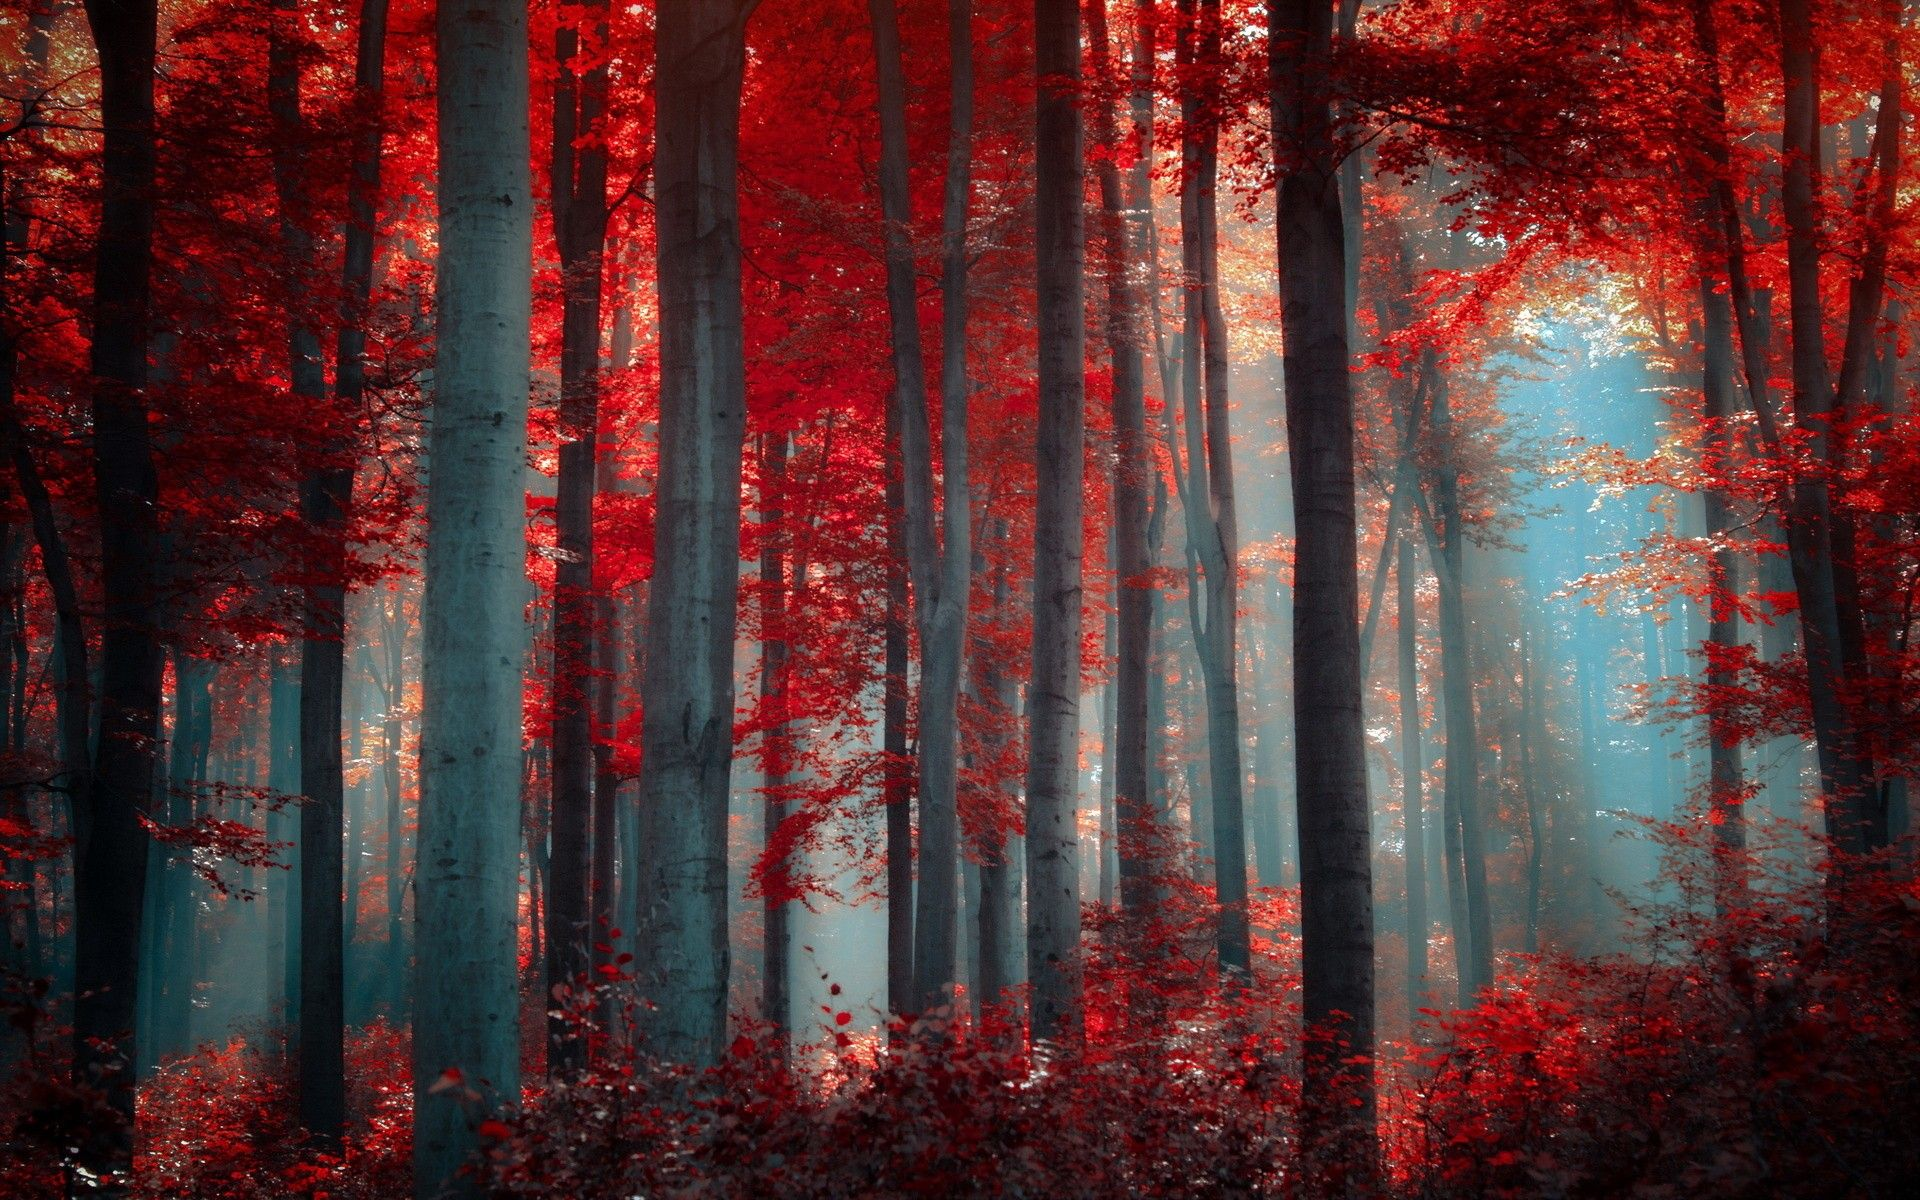 Red Autumn Forest Colorful Beije Amazing Branches Sunrise High Definition Scene Woods Forests Cool Scenery Seasons Leaf Leaves Gray Photography Panorama